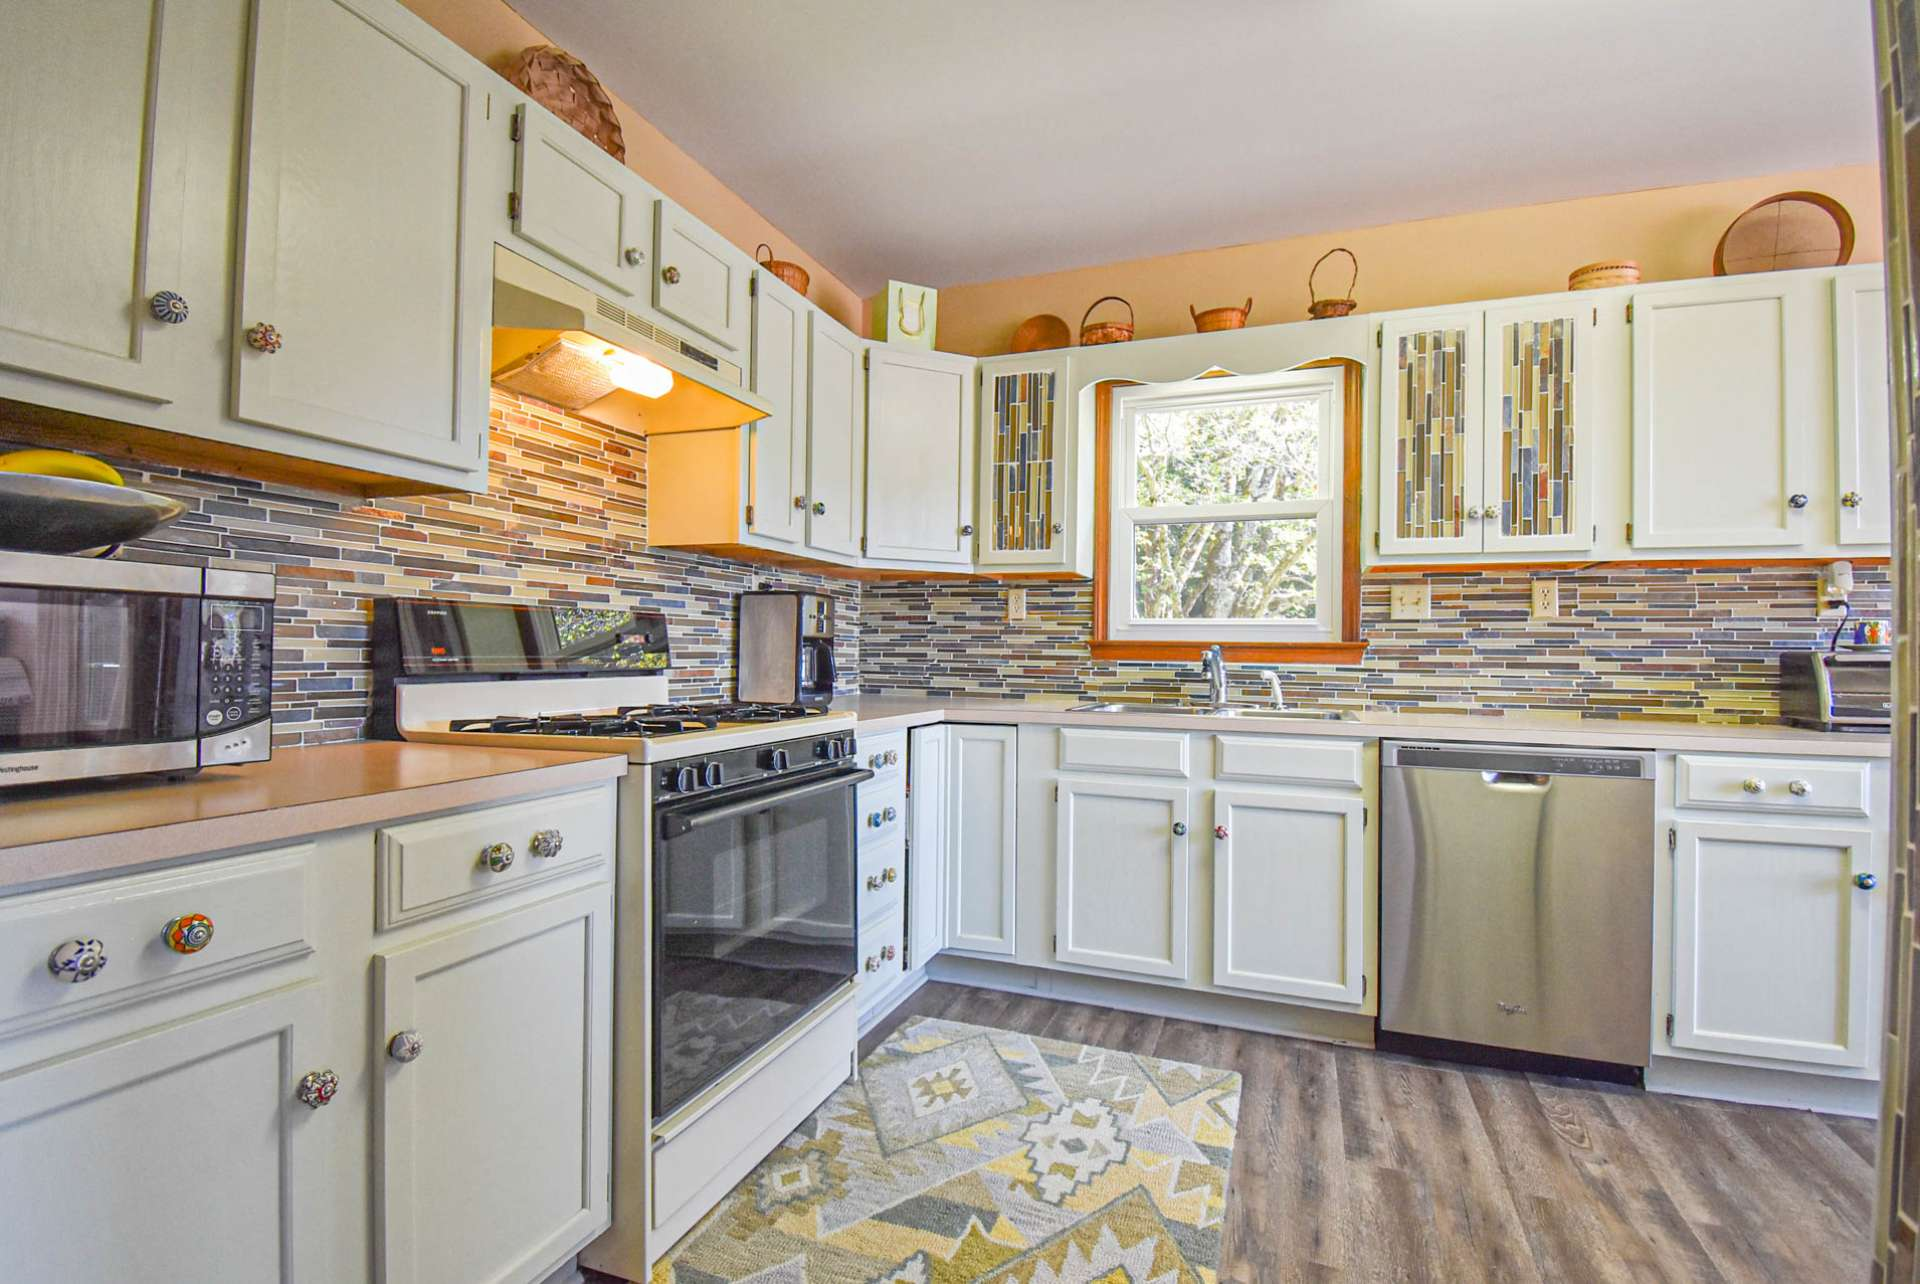 Notice the tiled accents and custom cabinetry hardware. Appliances include refrigerator, gas range, and stainless dishwasher.